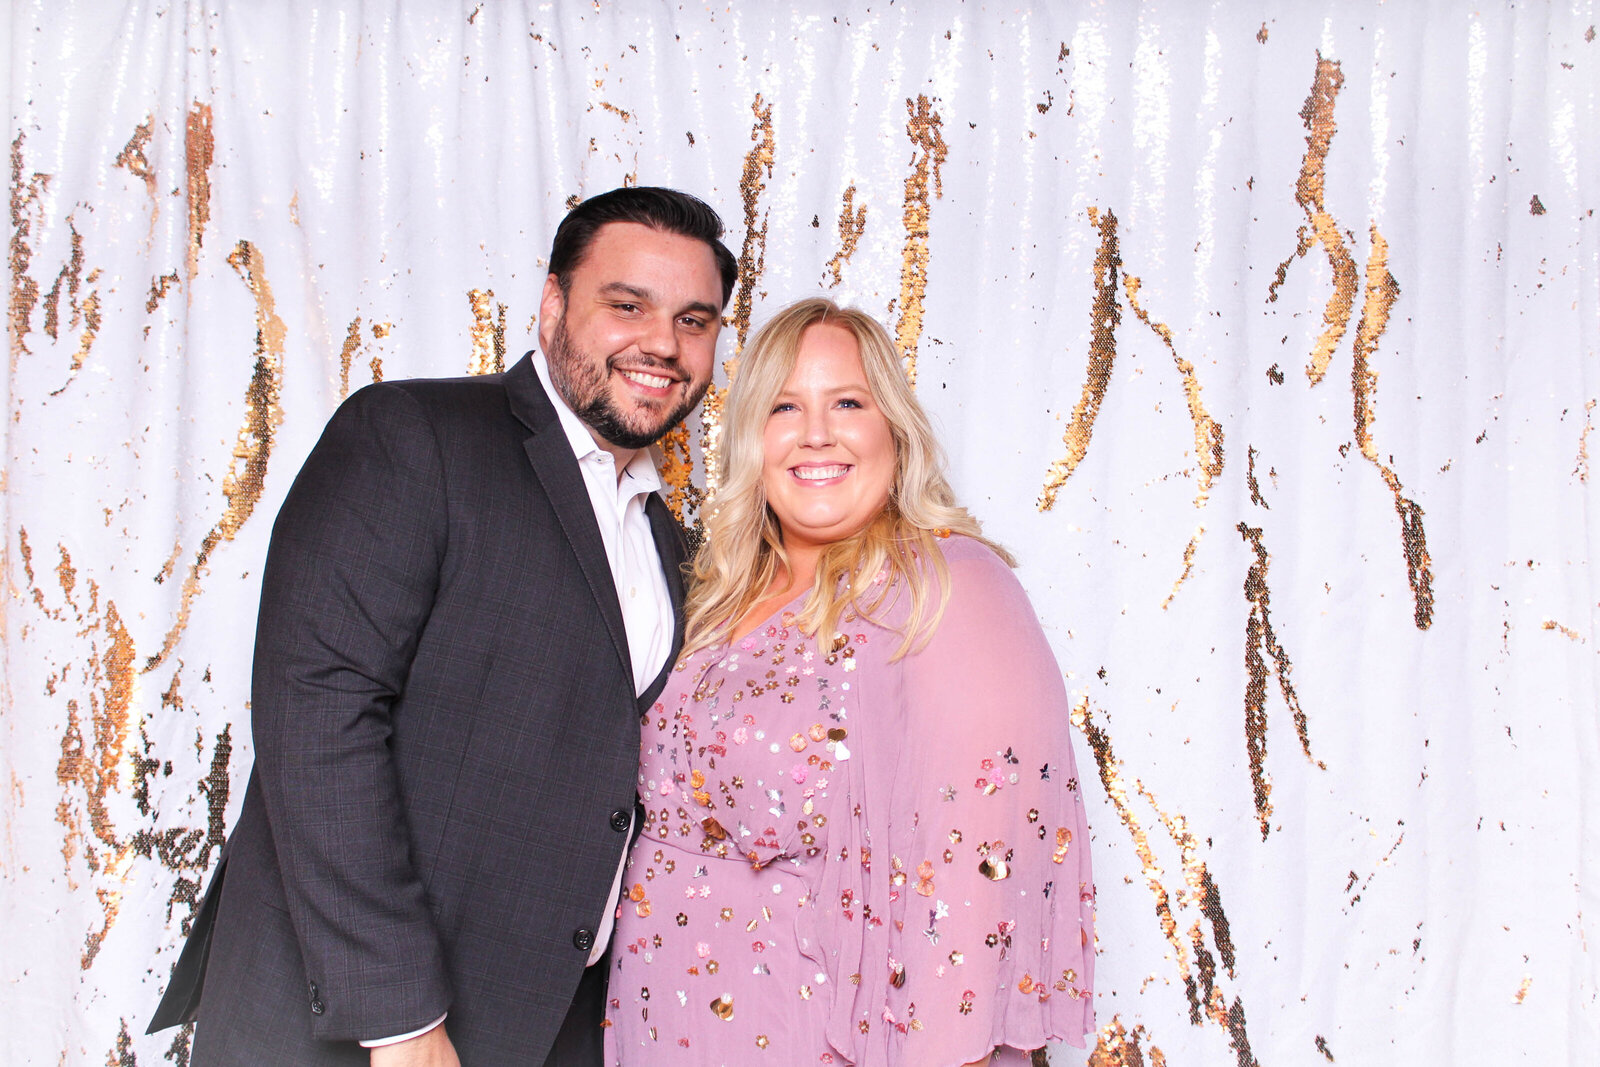 photo booth rental lakeland fl